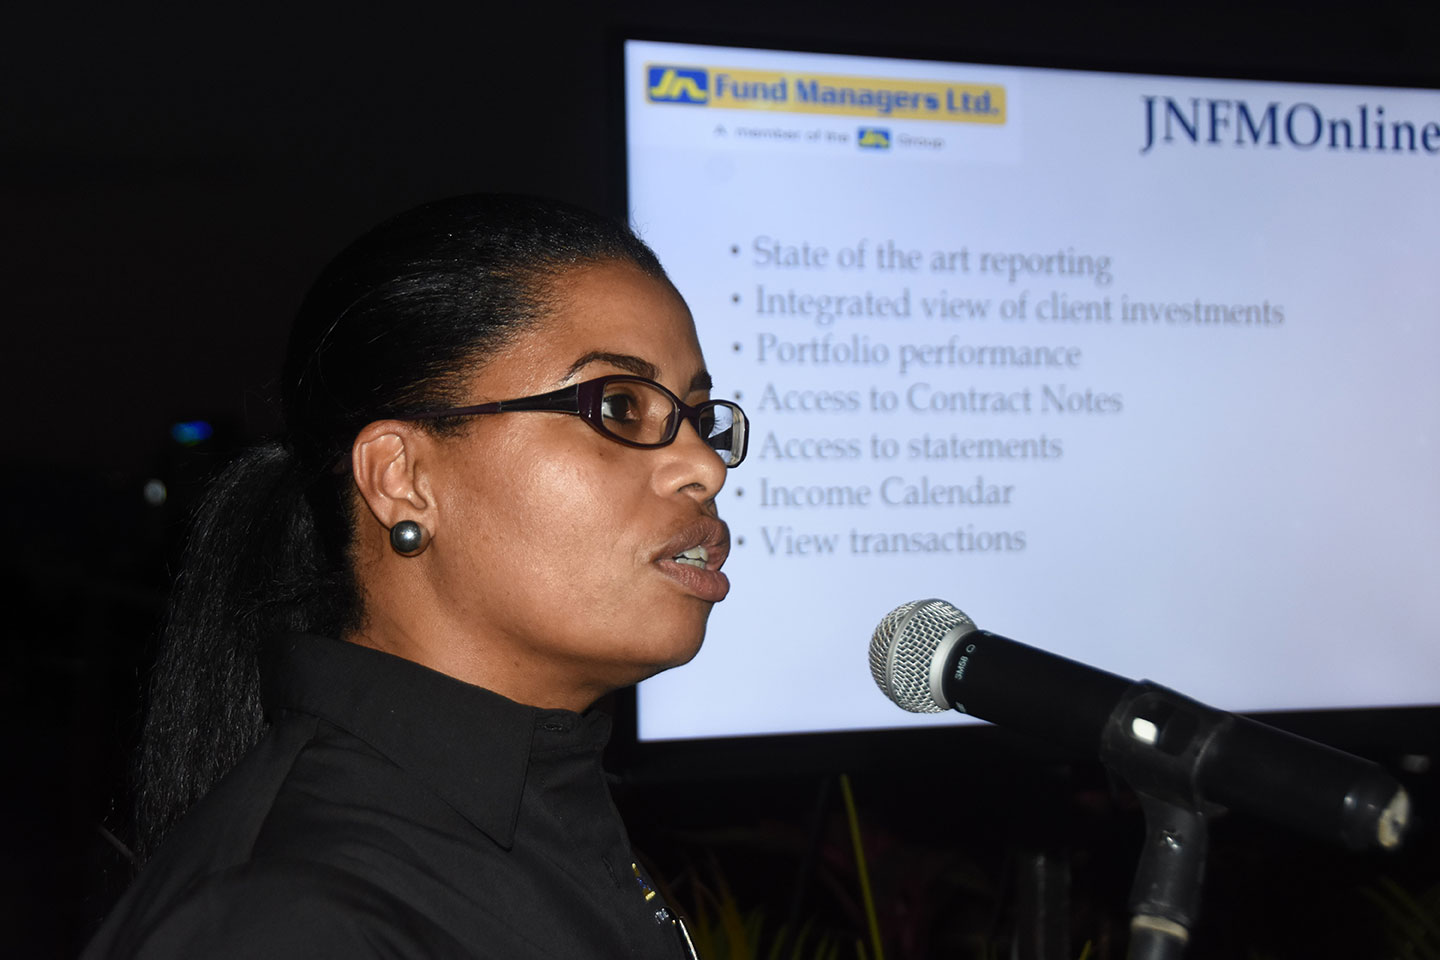 Sharon Whitelocke, deputy general manager, JN Fund Managers, discusses the company's new online platform with JN Group managers.